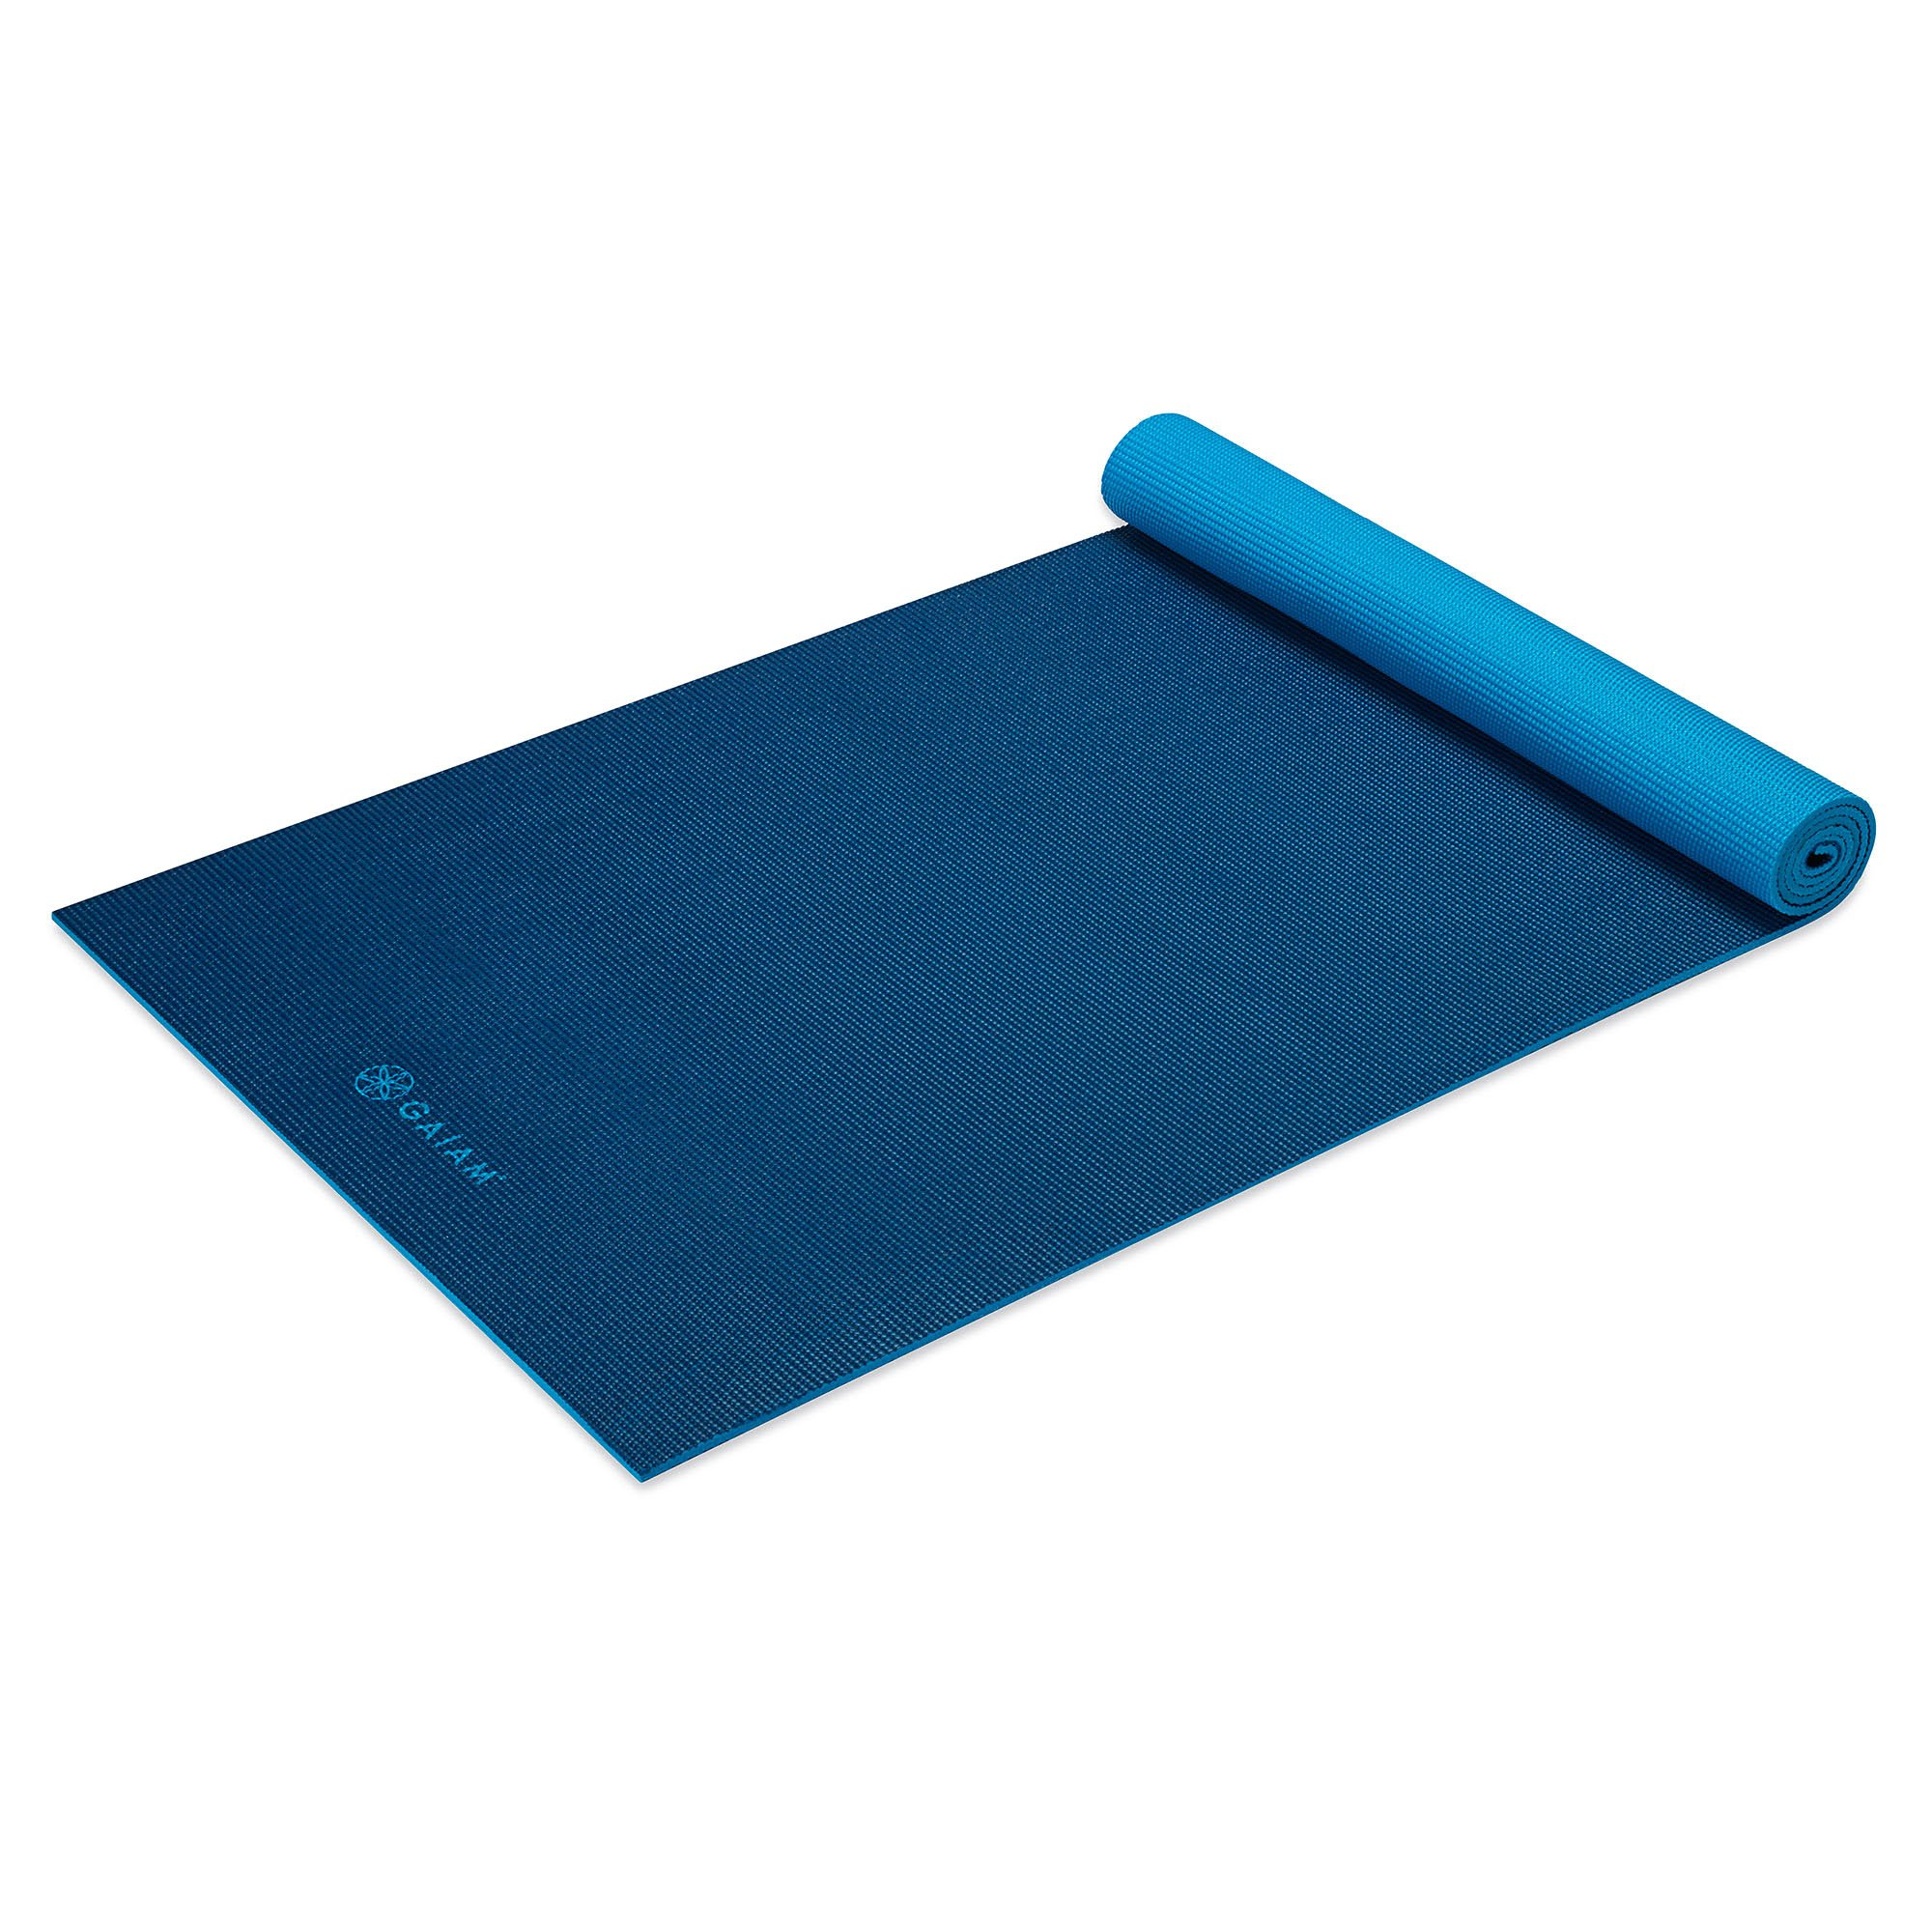 Gaiam Yoga Mat Solid Color Exercise Amp Fitness Mat For